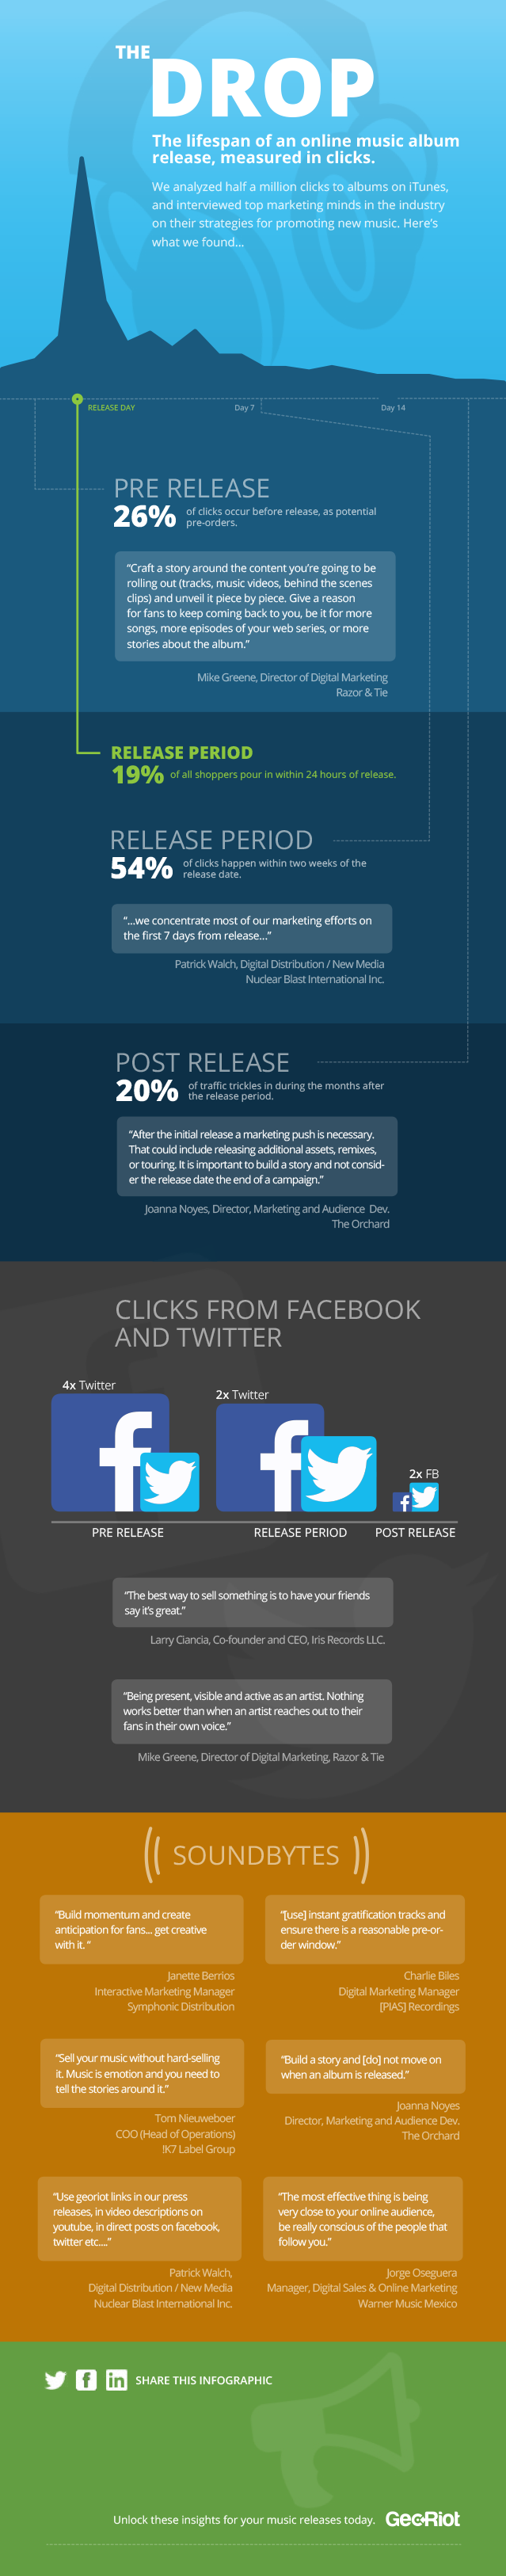 Music release strategy infographic based on clicks